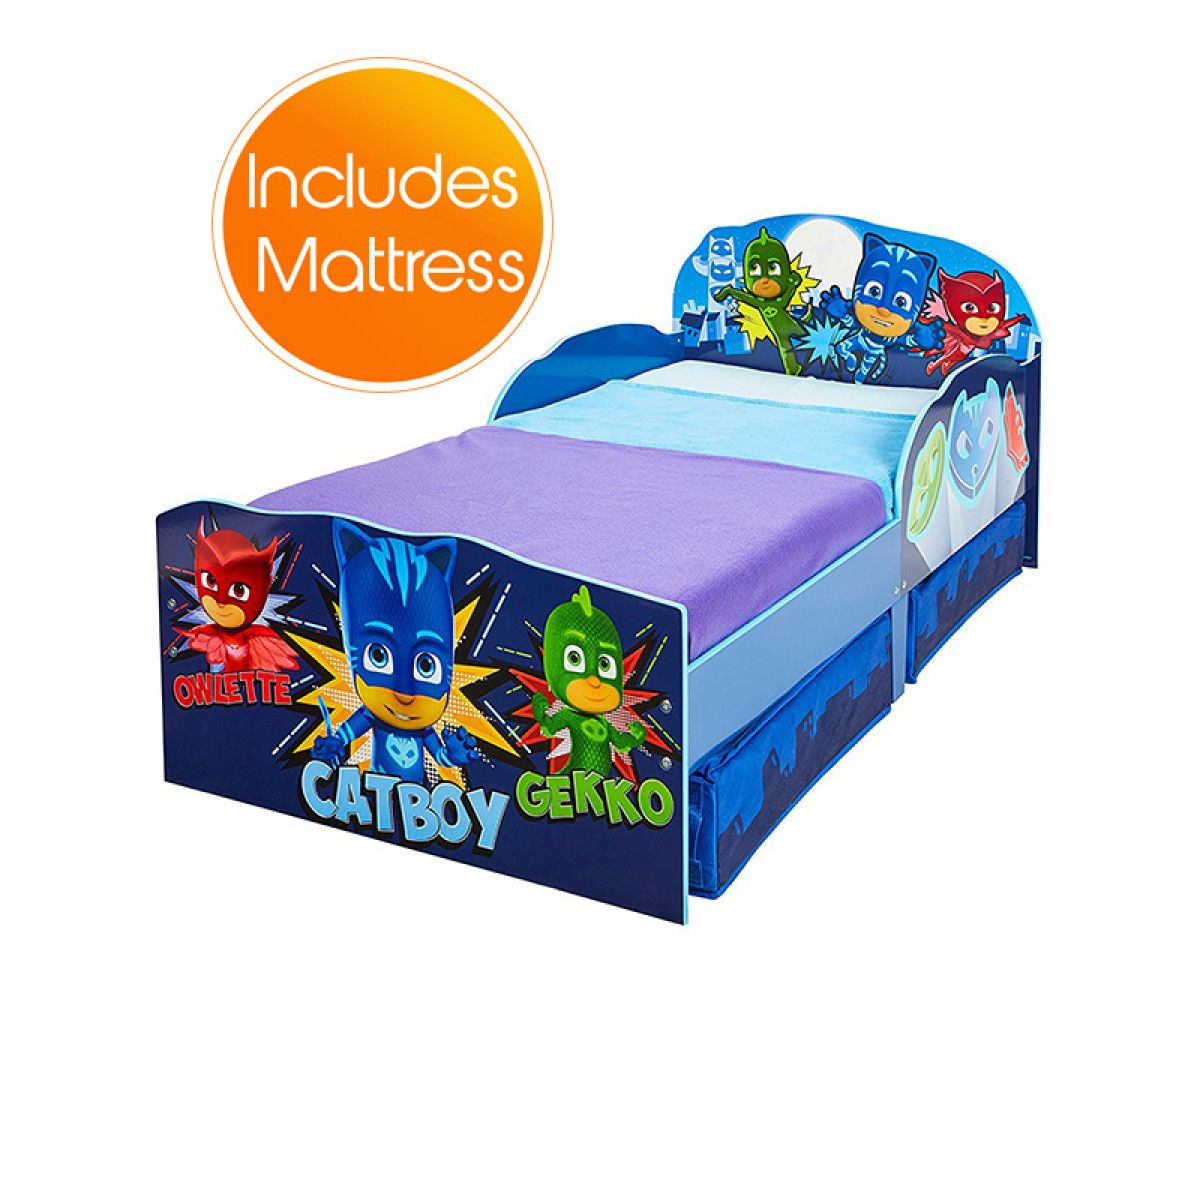 Pj Masks Toddler Bed With Storage Plus Deluxe Foam Mattress